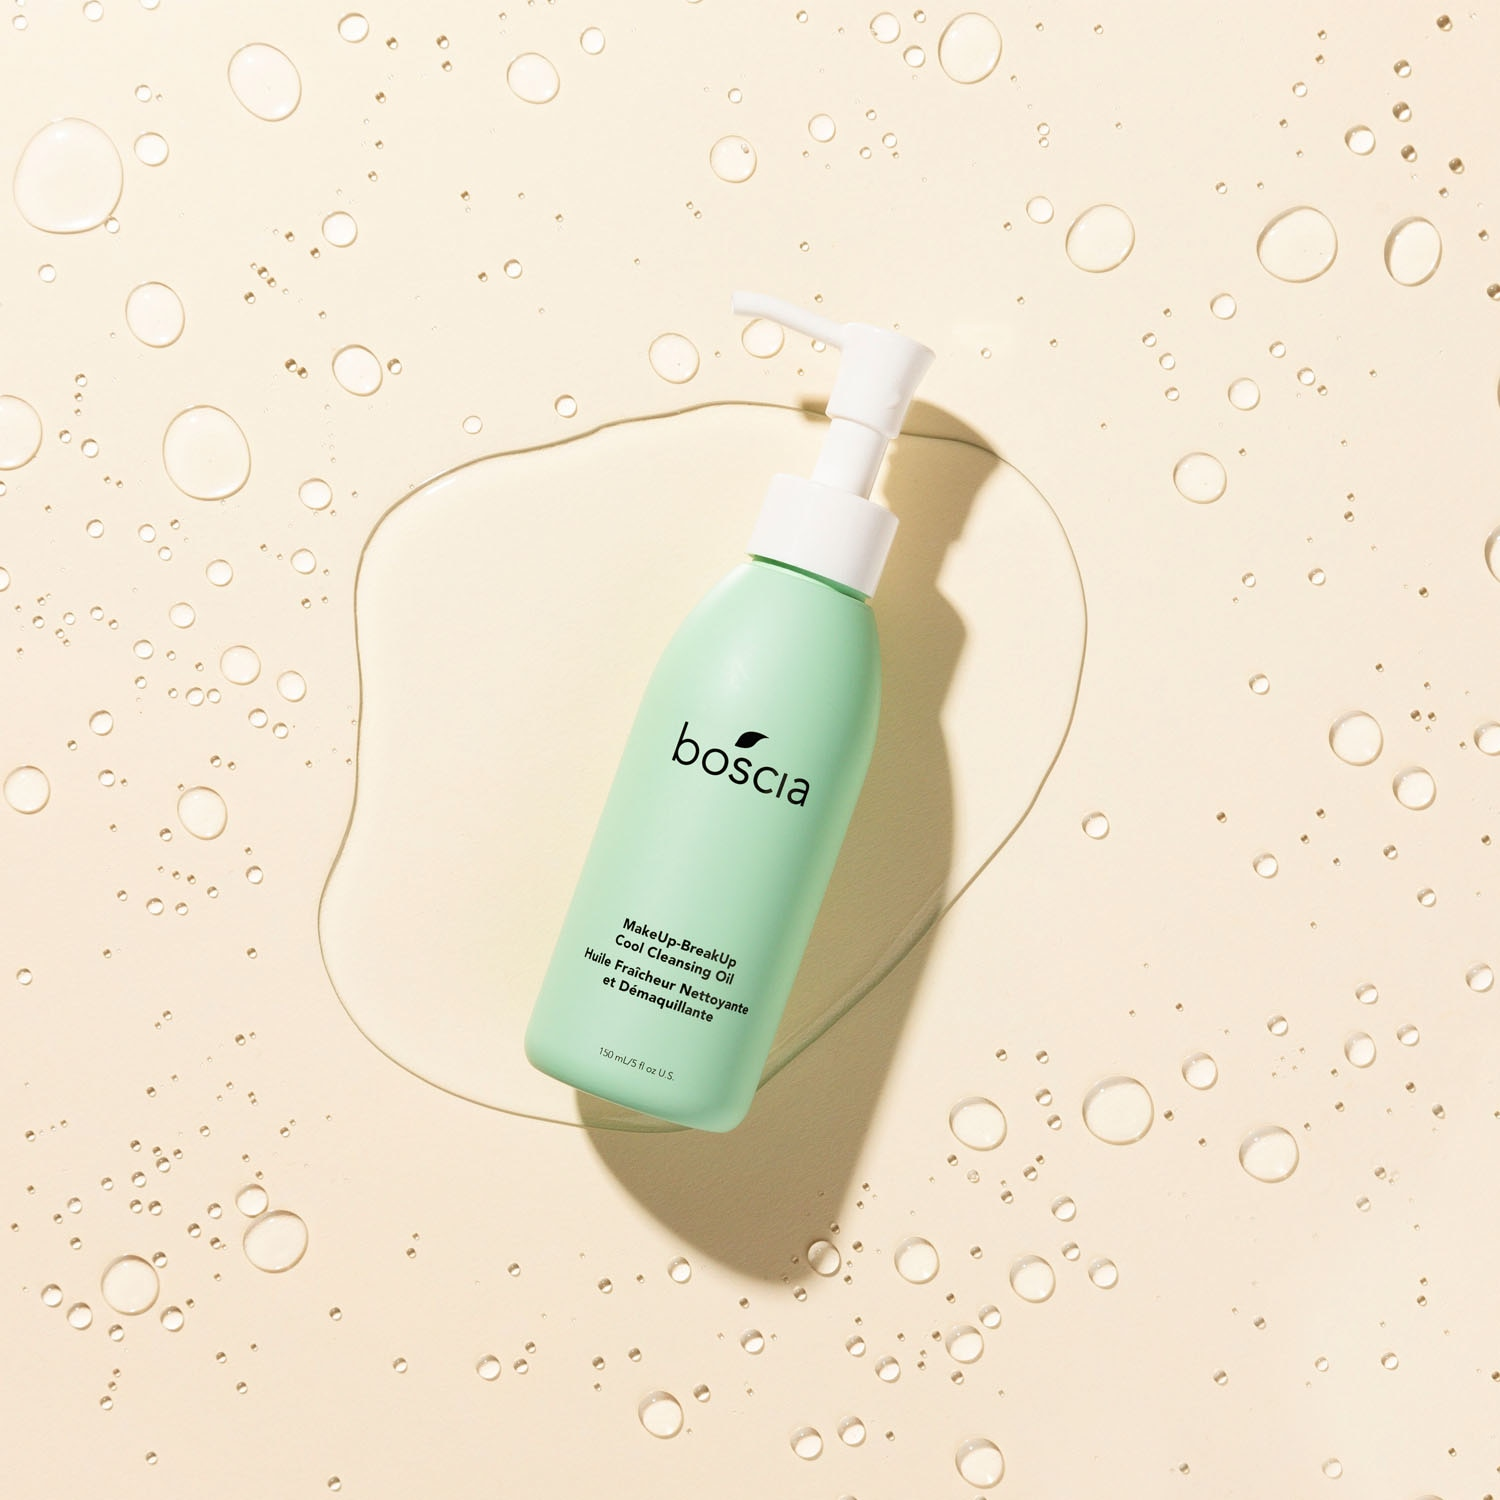 MAKEUP-BREAKUP COOL CLEANSING OIL (ACEITE LIMPIADOR)